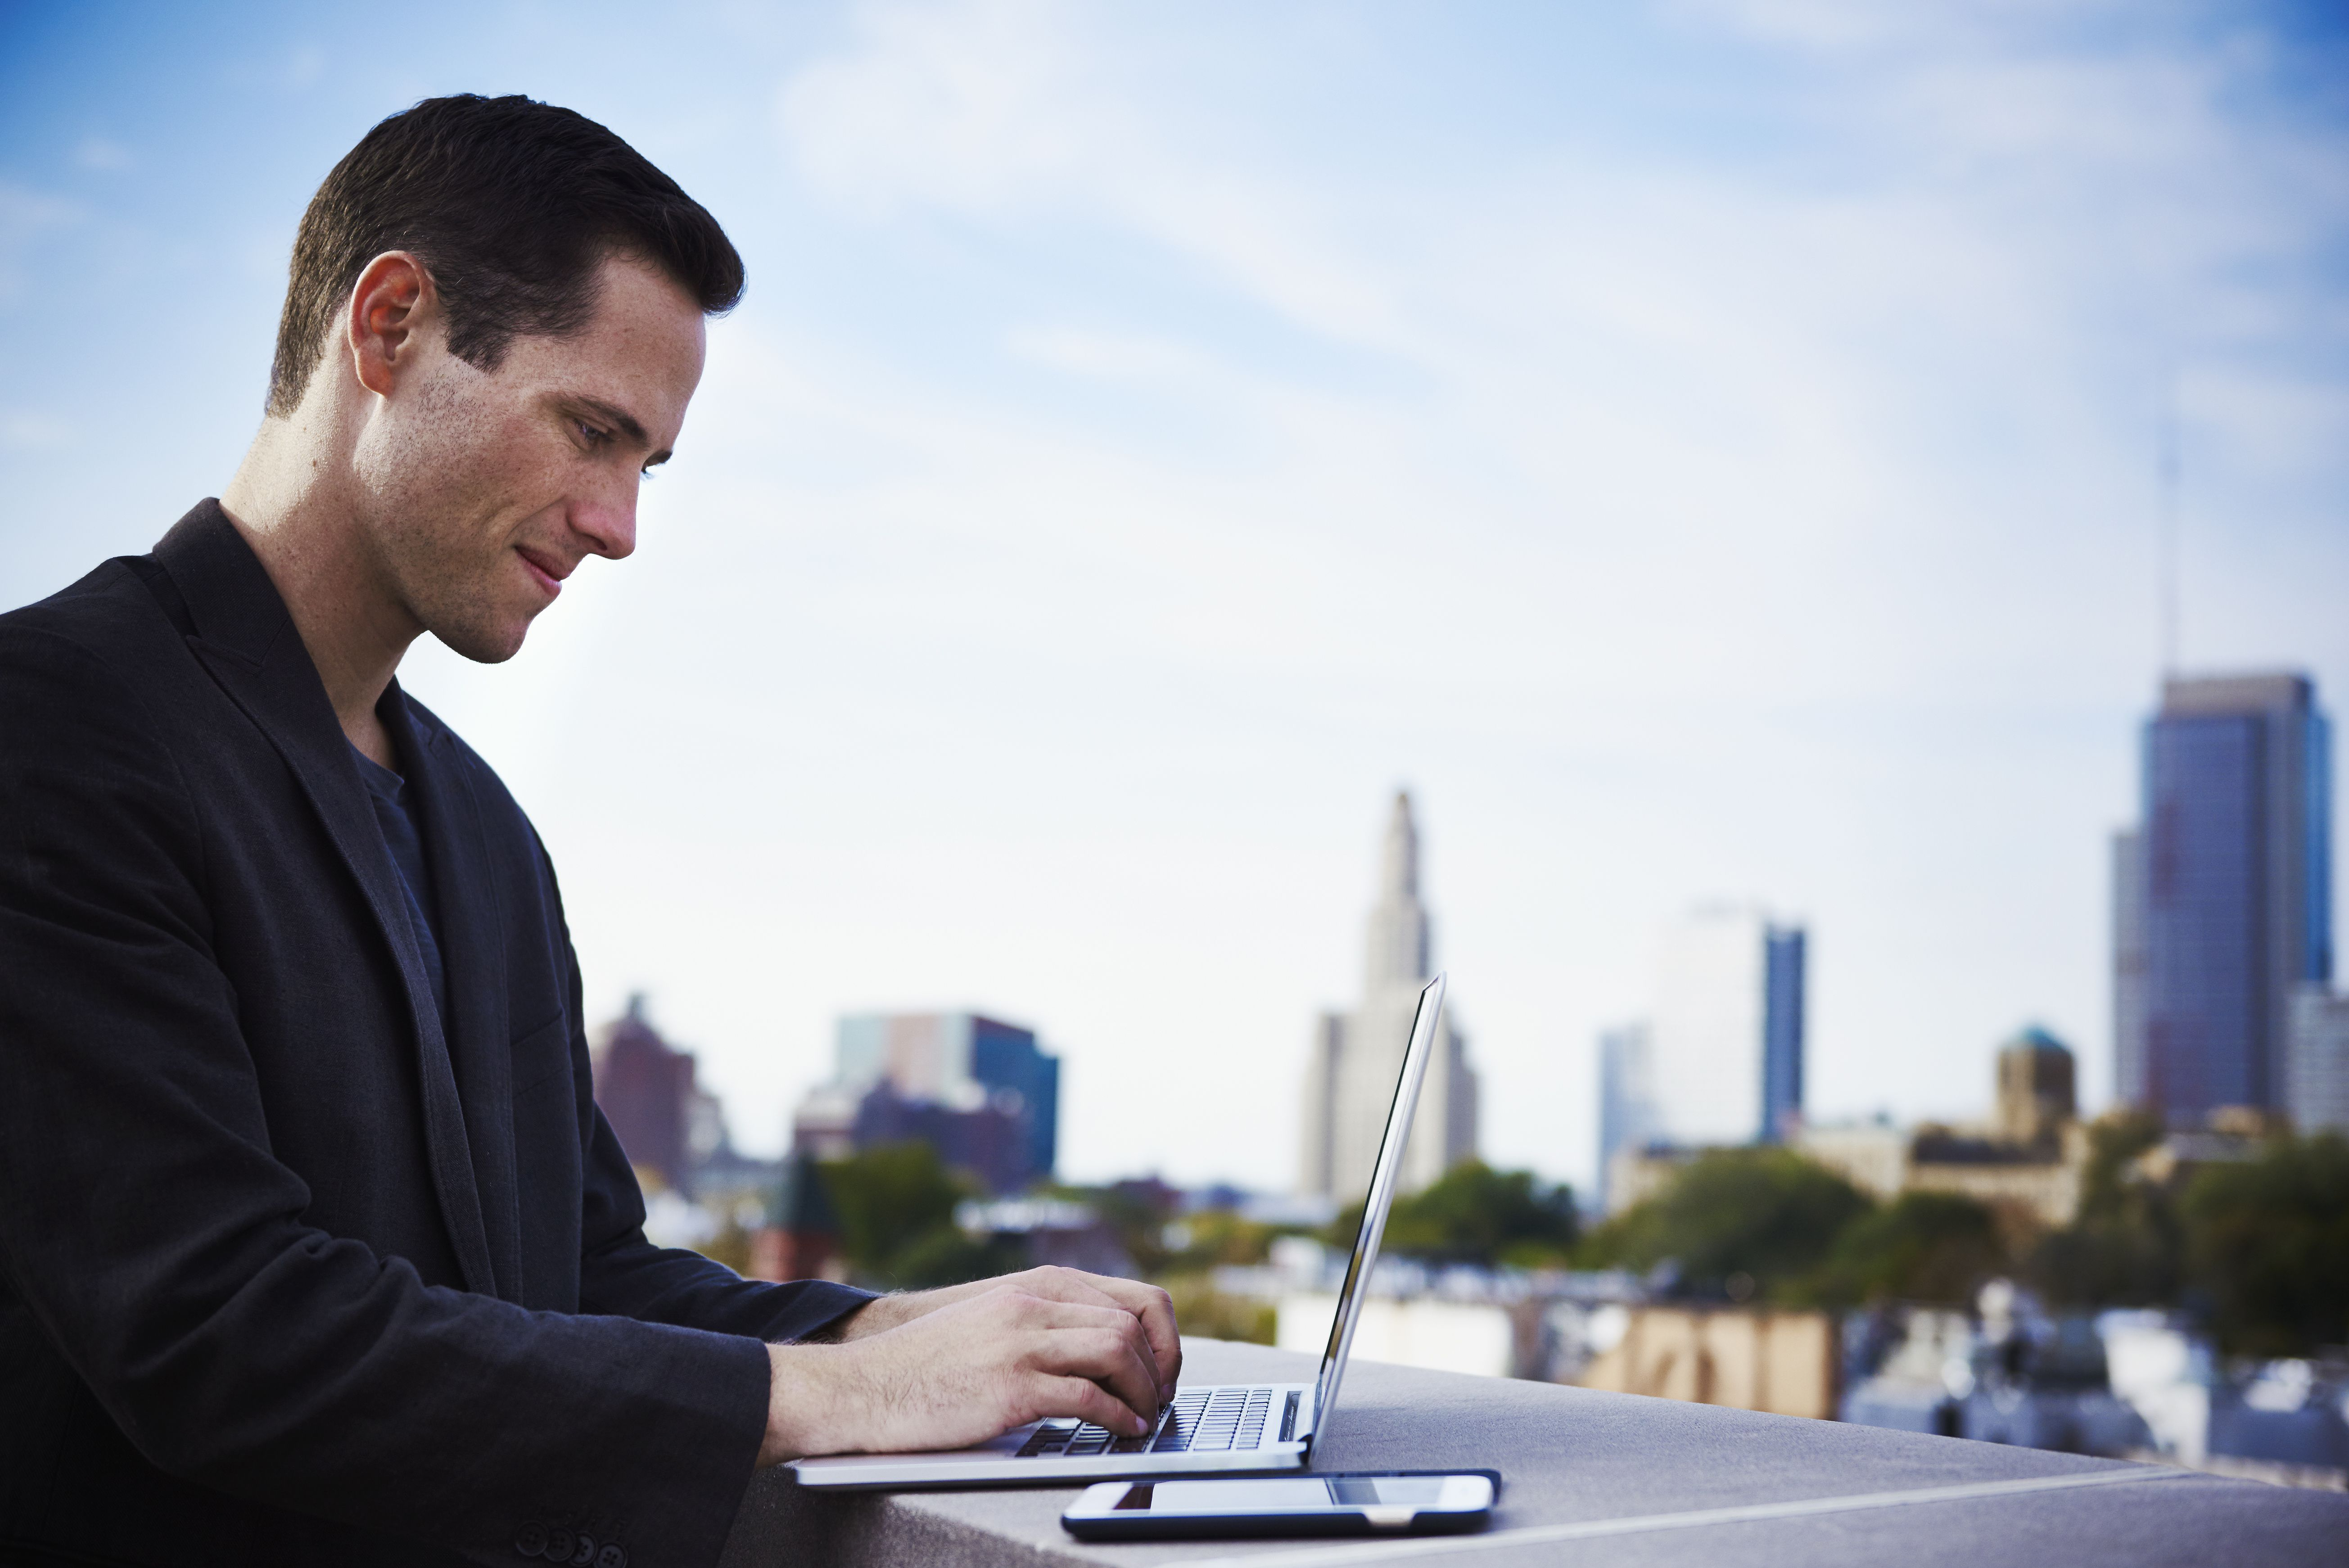 A young man standing on a rooftop working at an open laptop with a cellphone beside it.